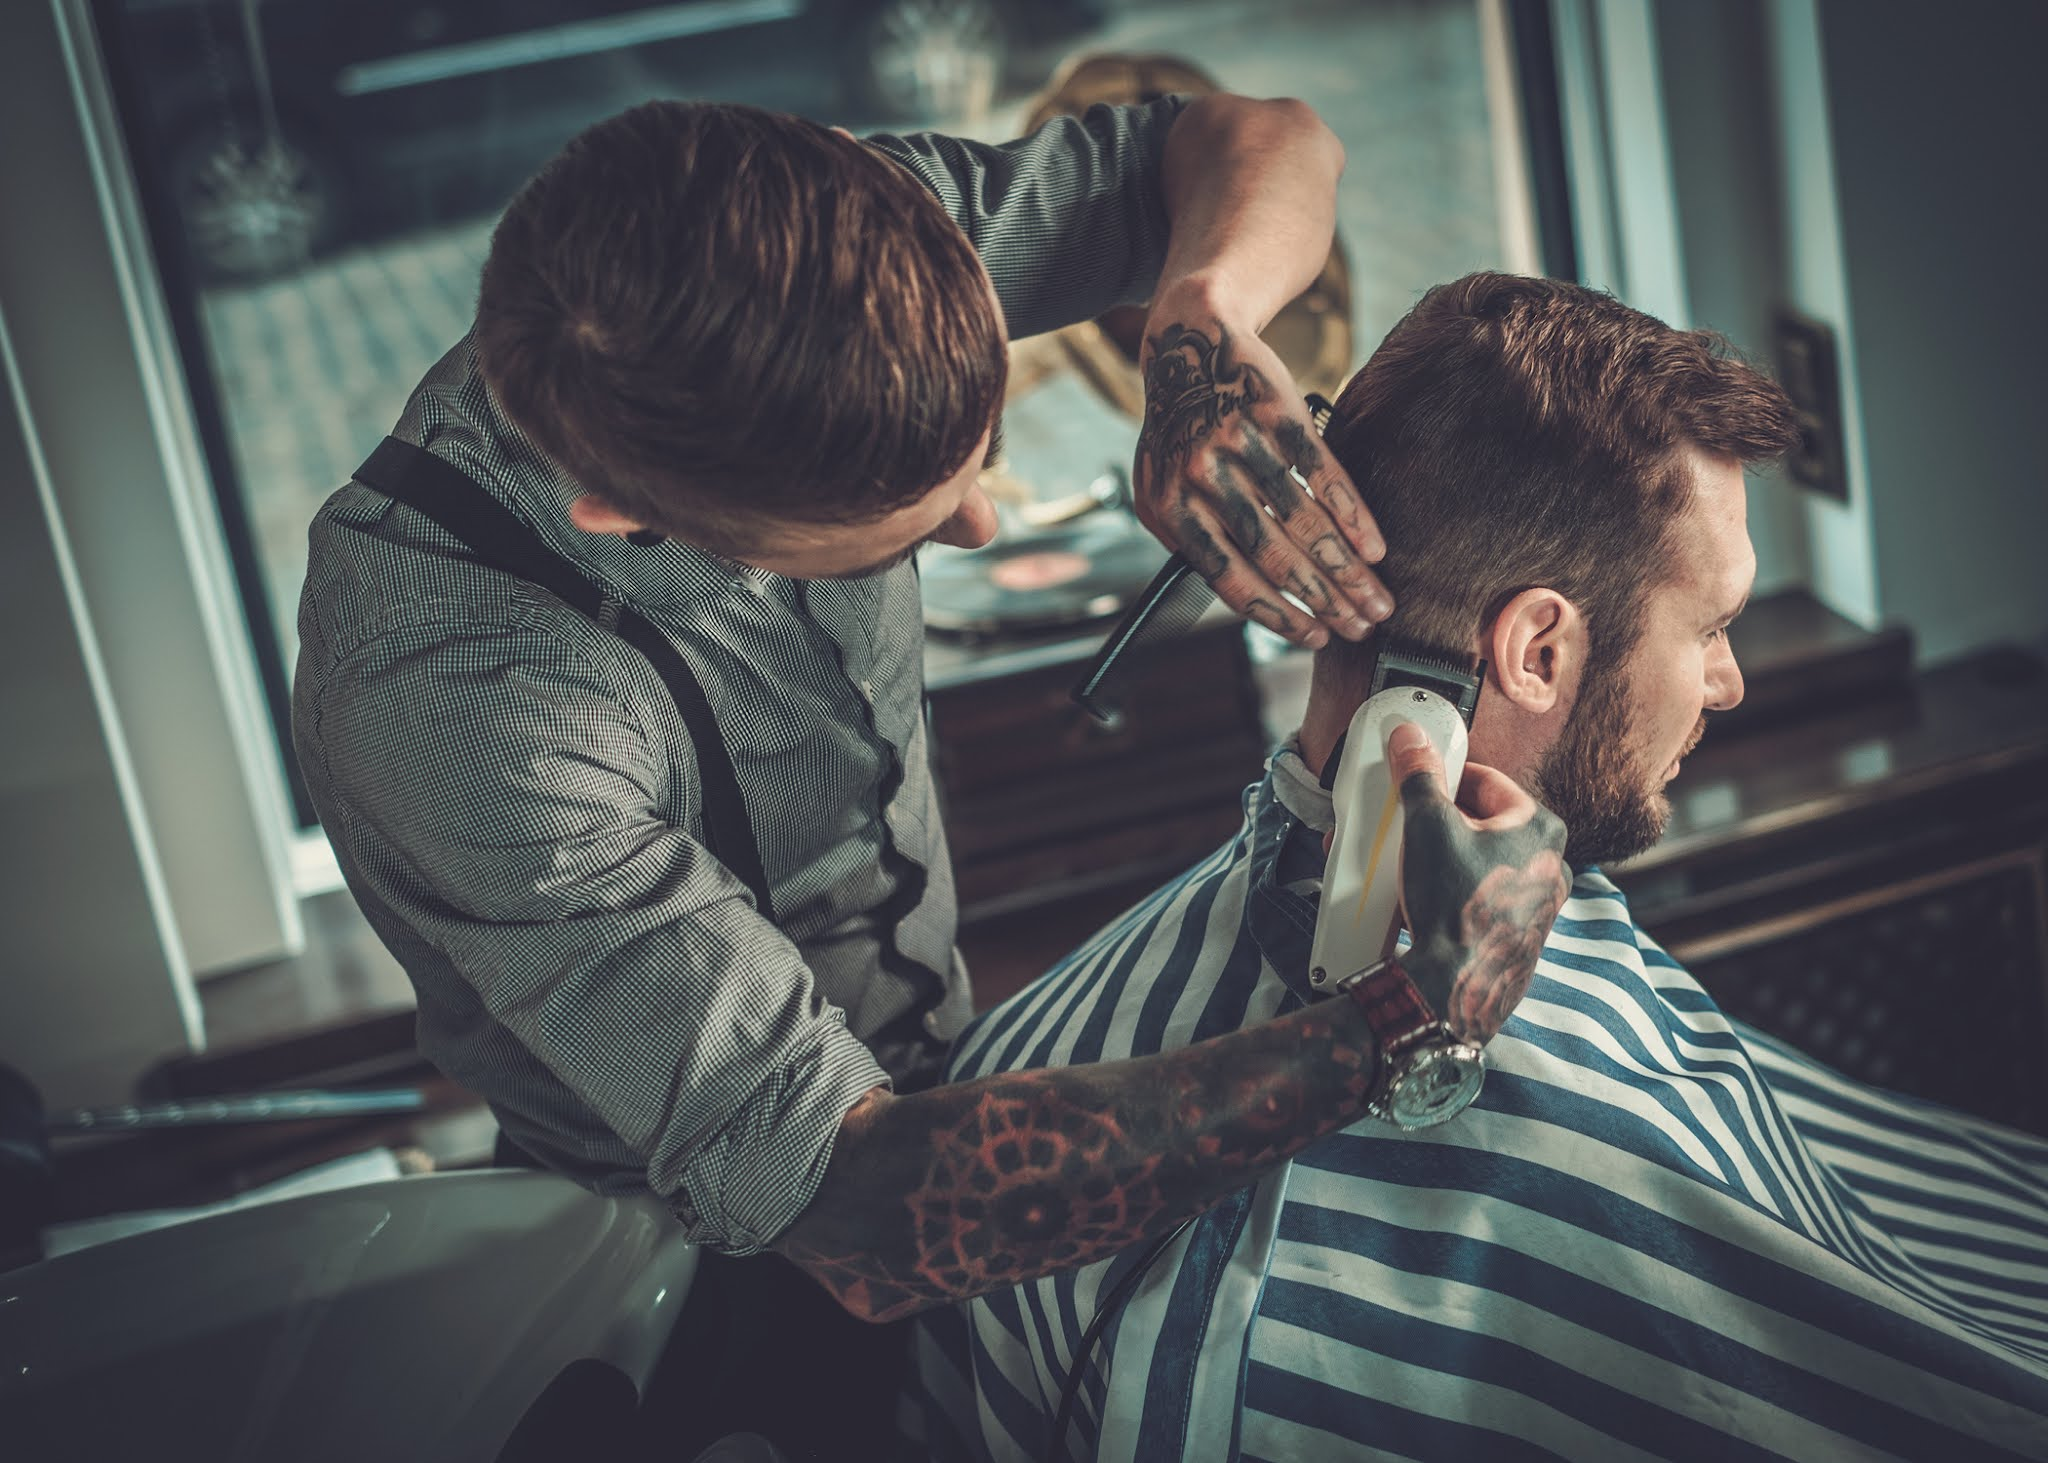 The selection of the barbershop determines whether you will be content with your haircut or not. Location is an important consideration.